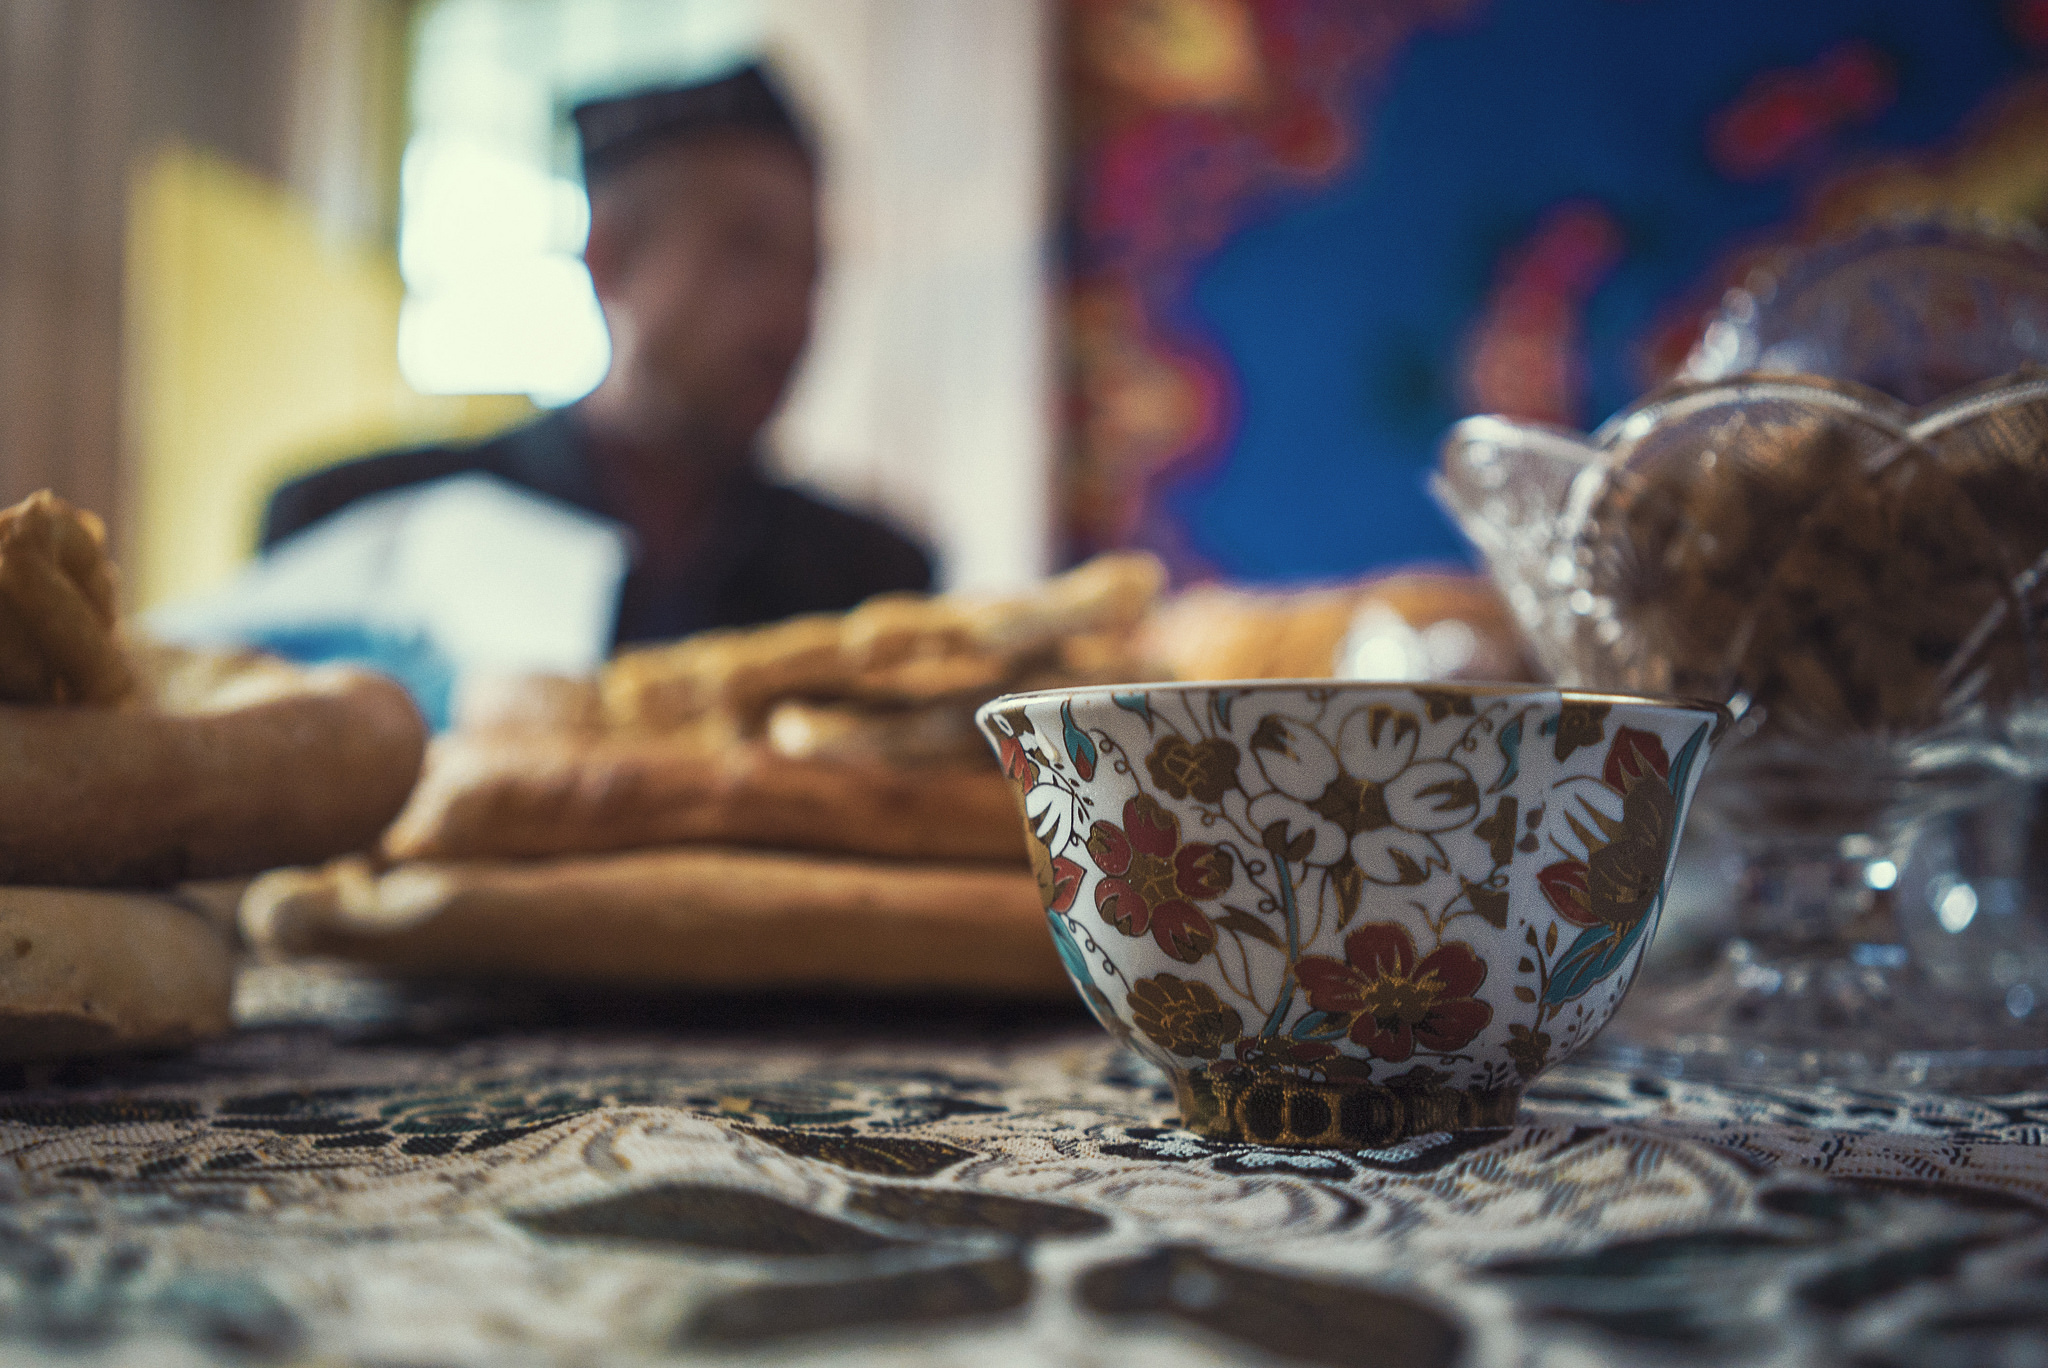 Any visit to a Yee home includes the serving of various refreshments including tea and the ubiquitous naan bread which also has religious significance.